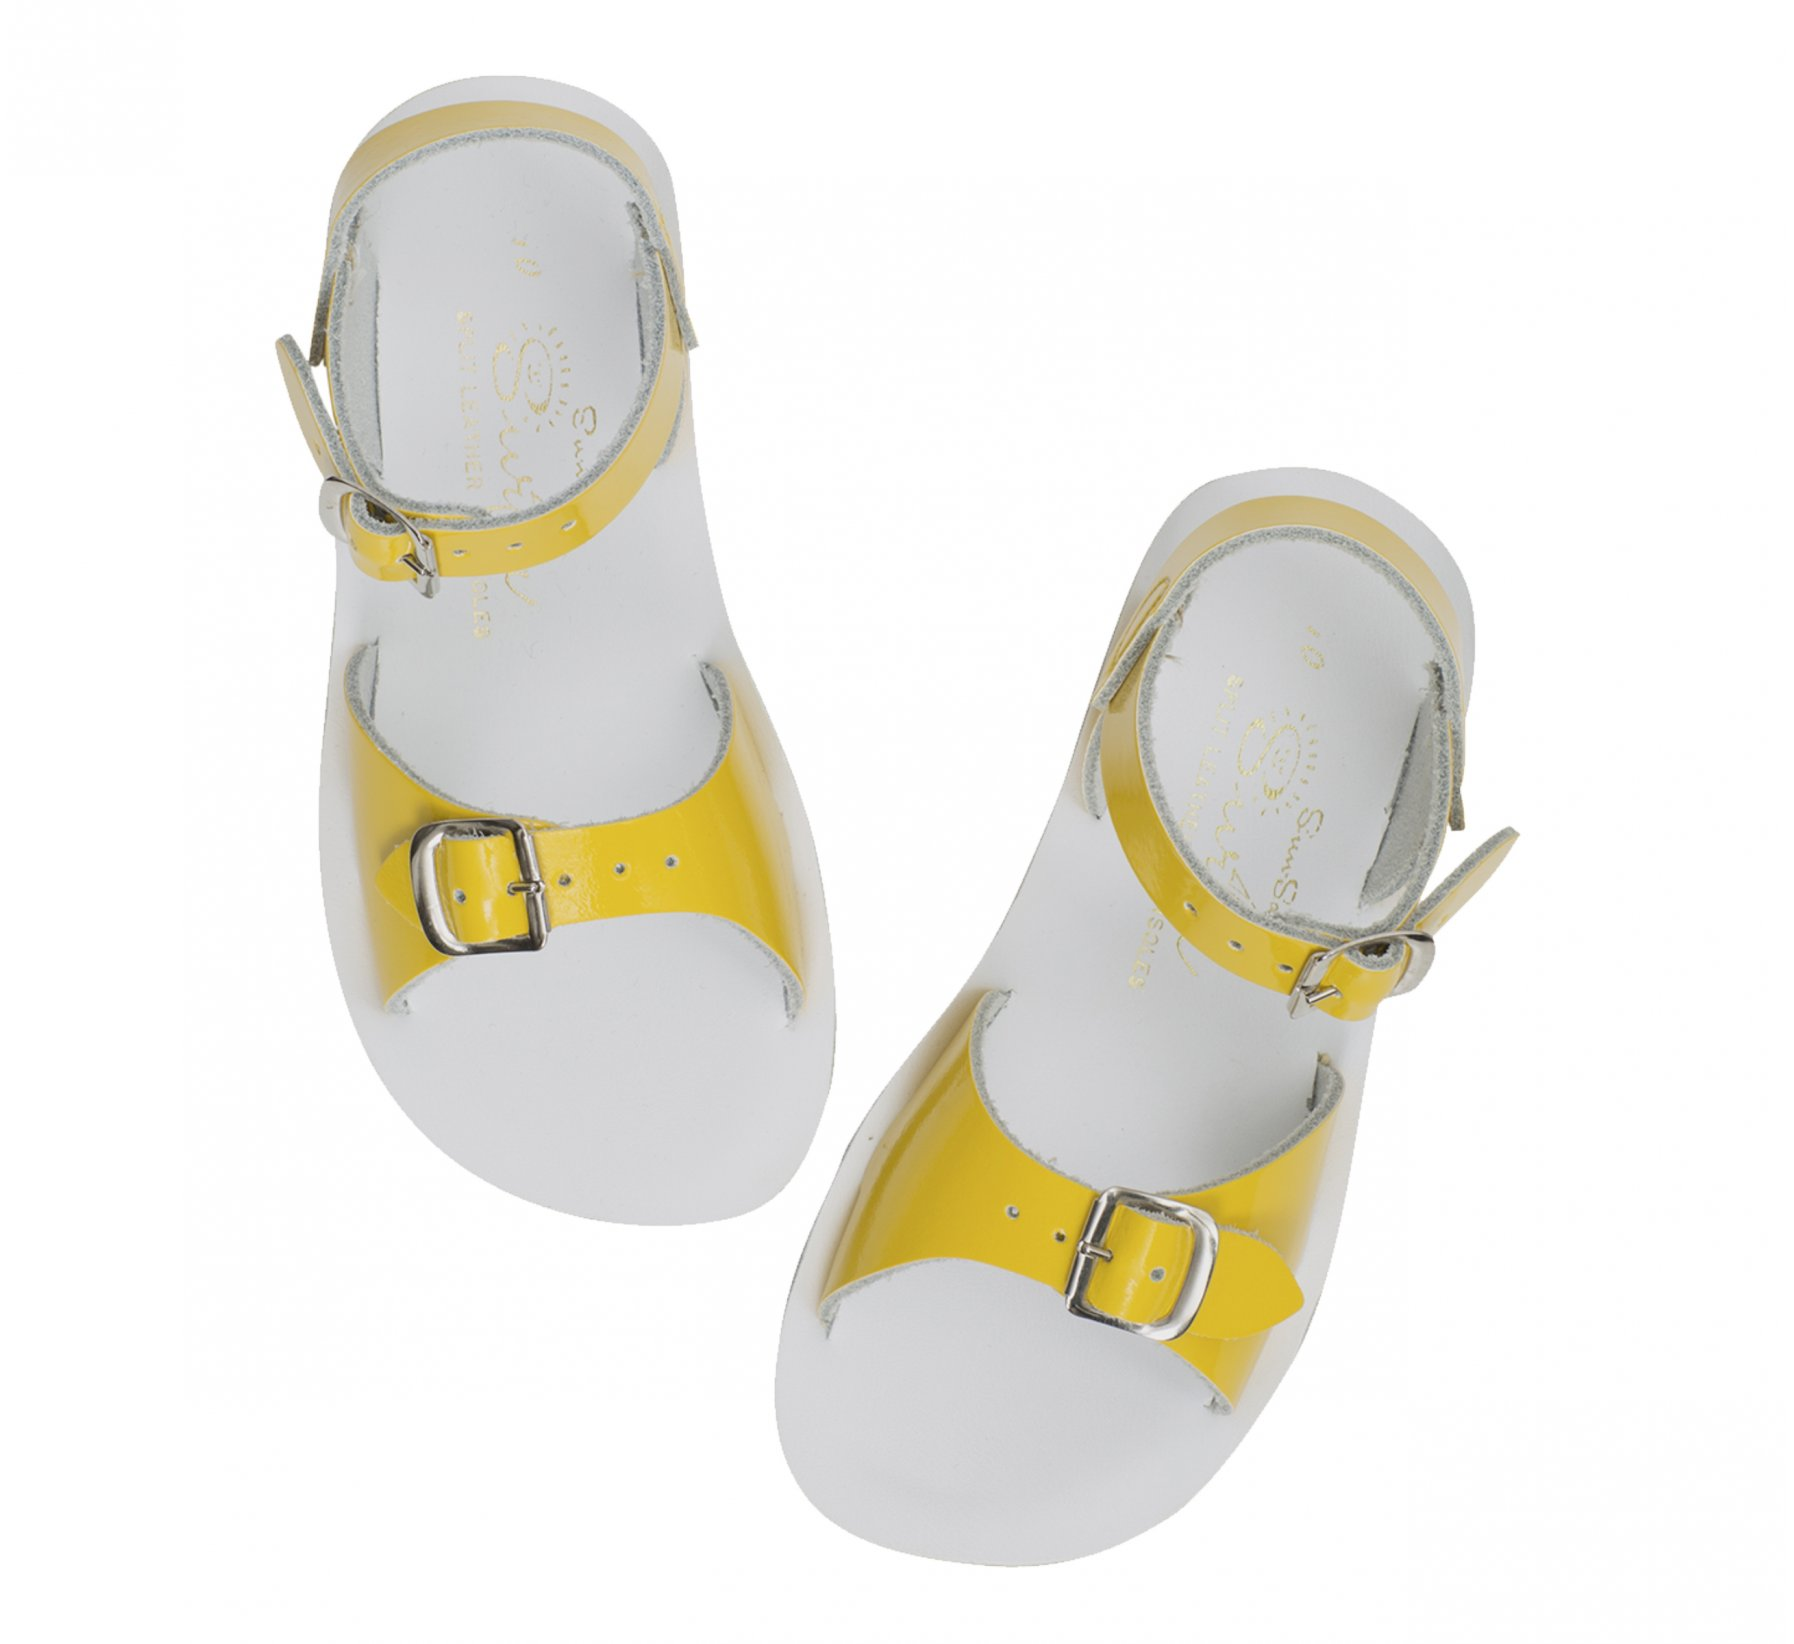 Surfer Kuning Berkilat - Salt Water Sandals